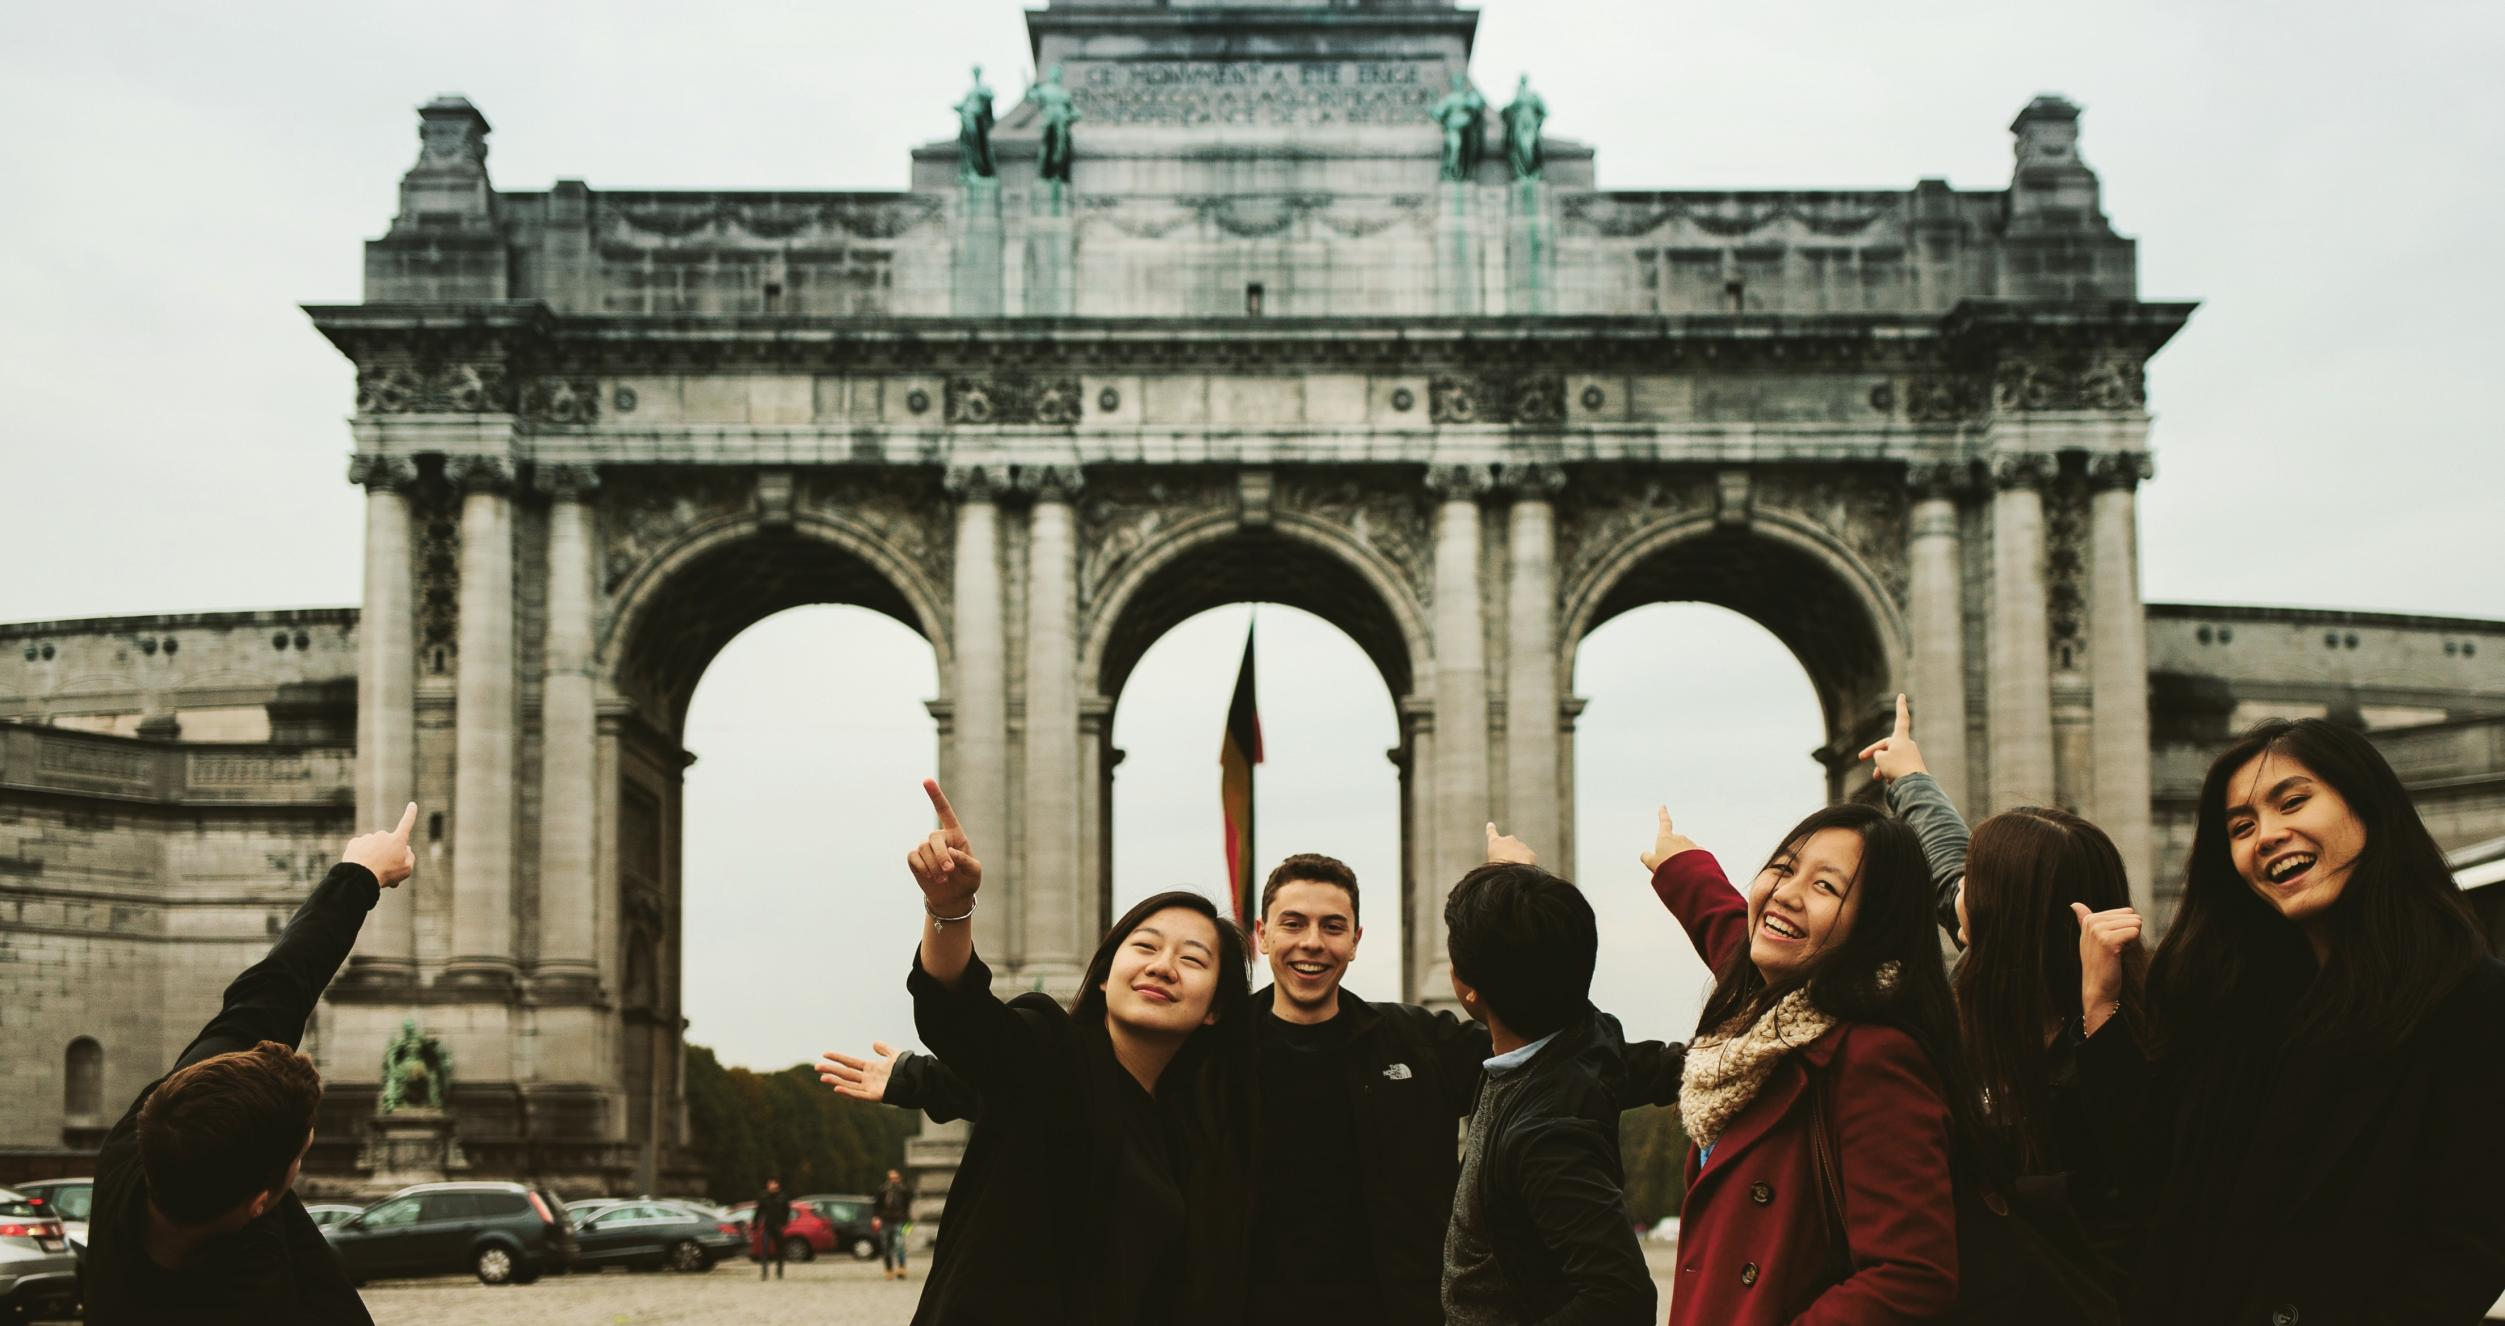 Students pointing to the Arcade du Cinquantenaire on their Brussels, Belgium trip during their semester abroad